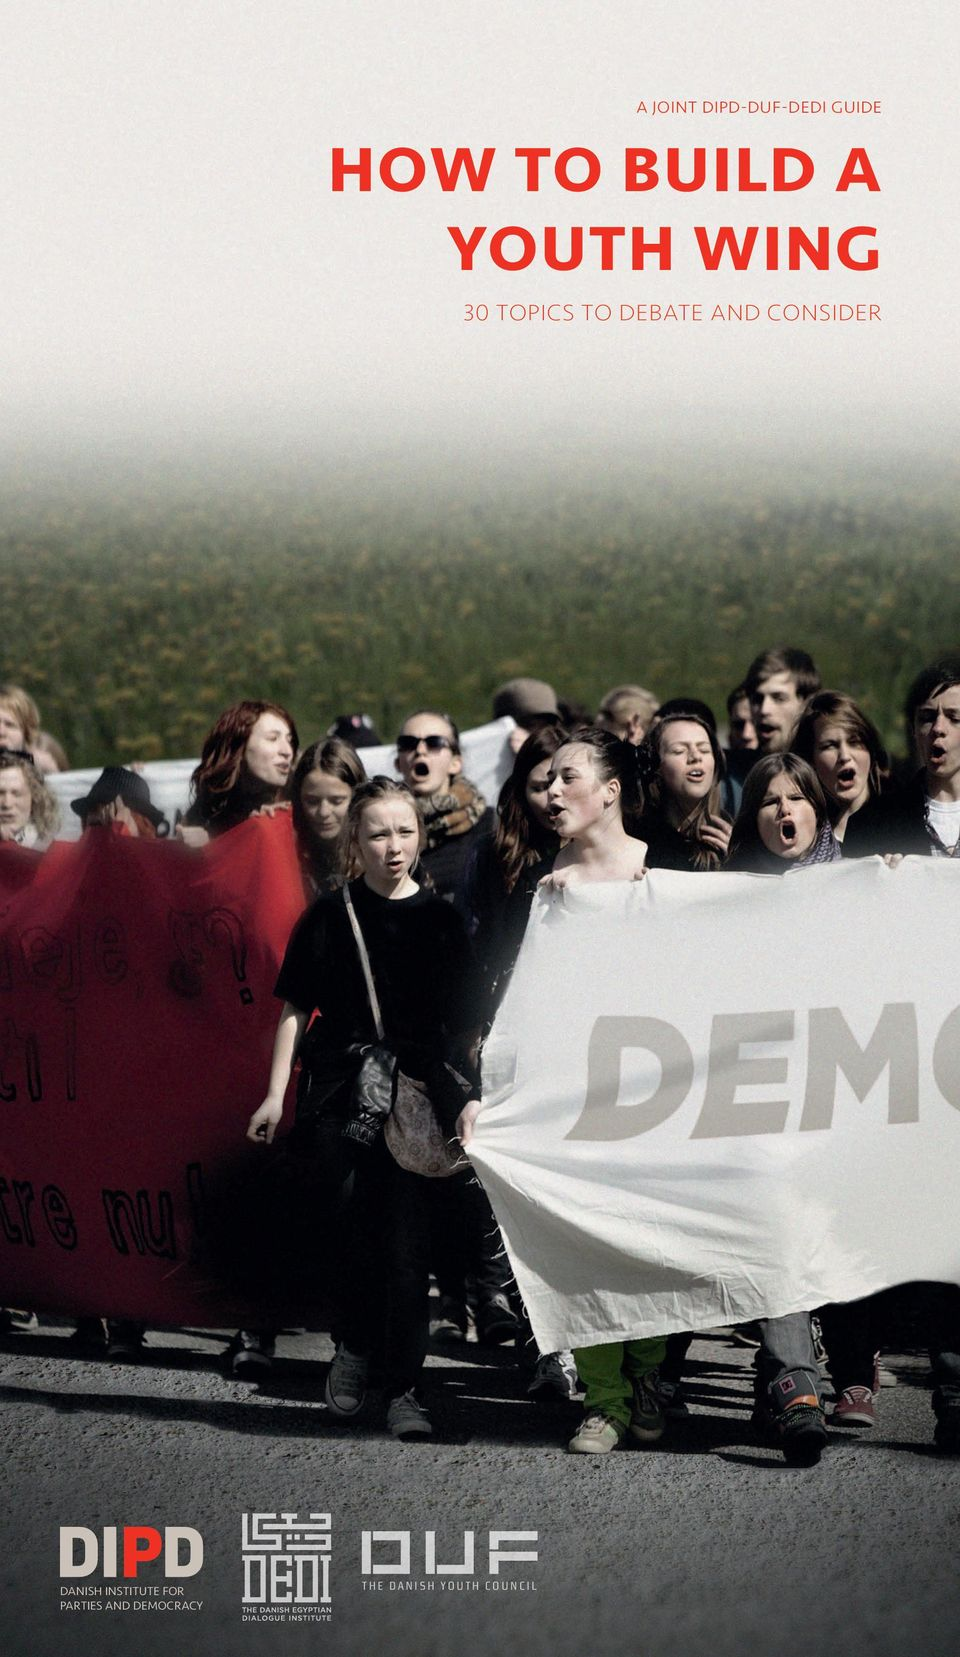 parties and democracy The Danish Youth Council HOW TO